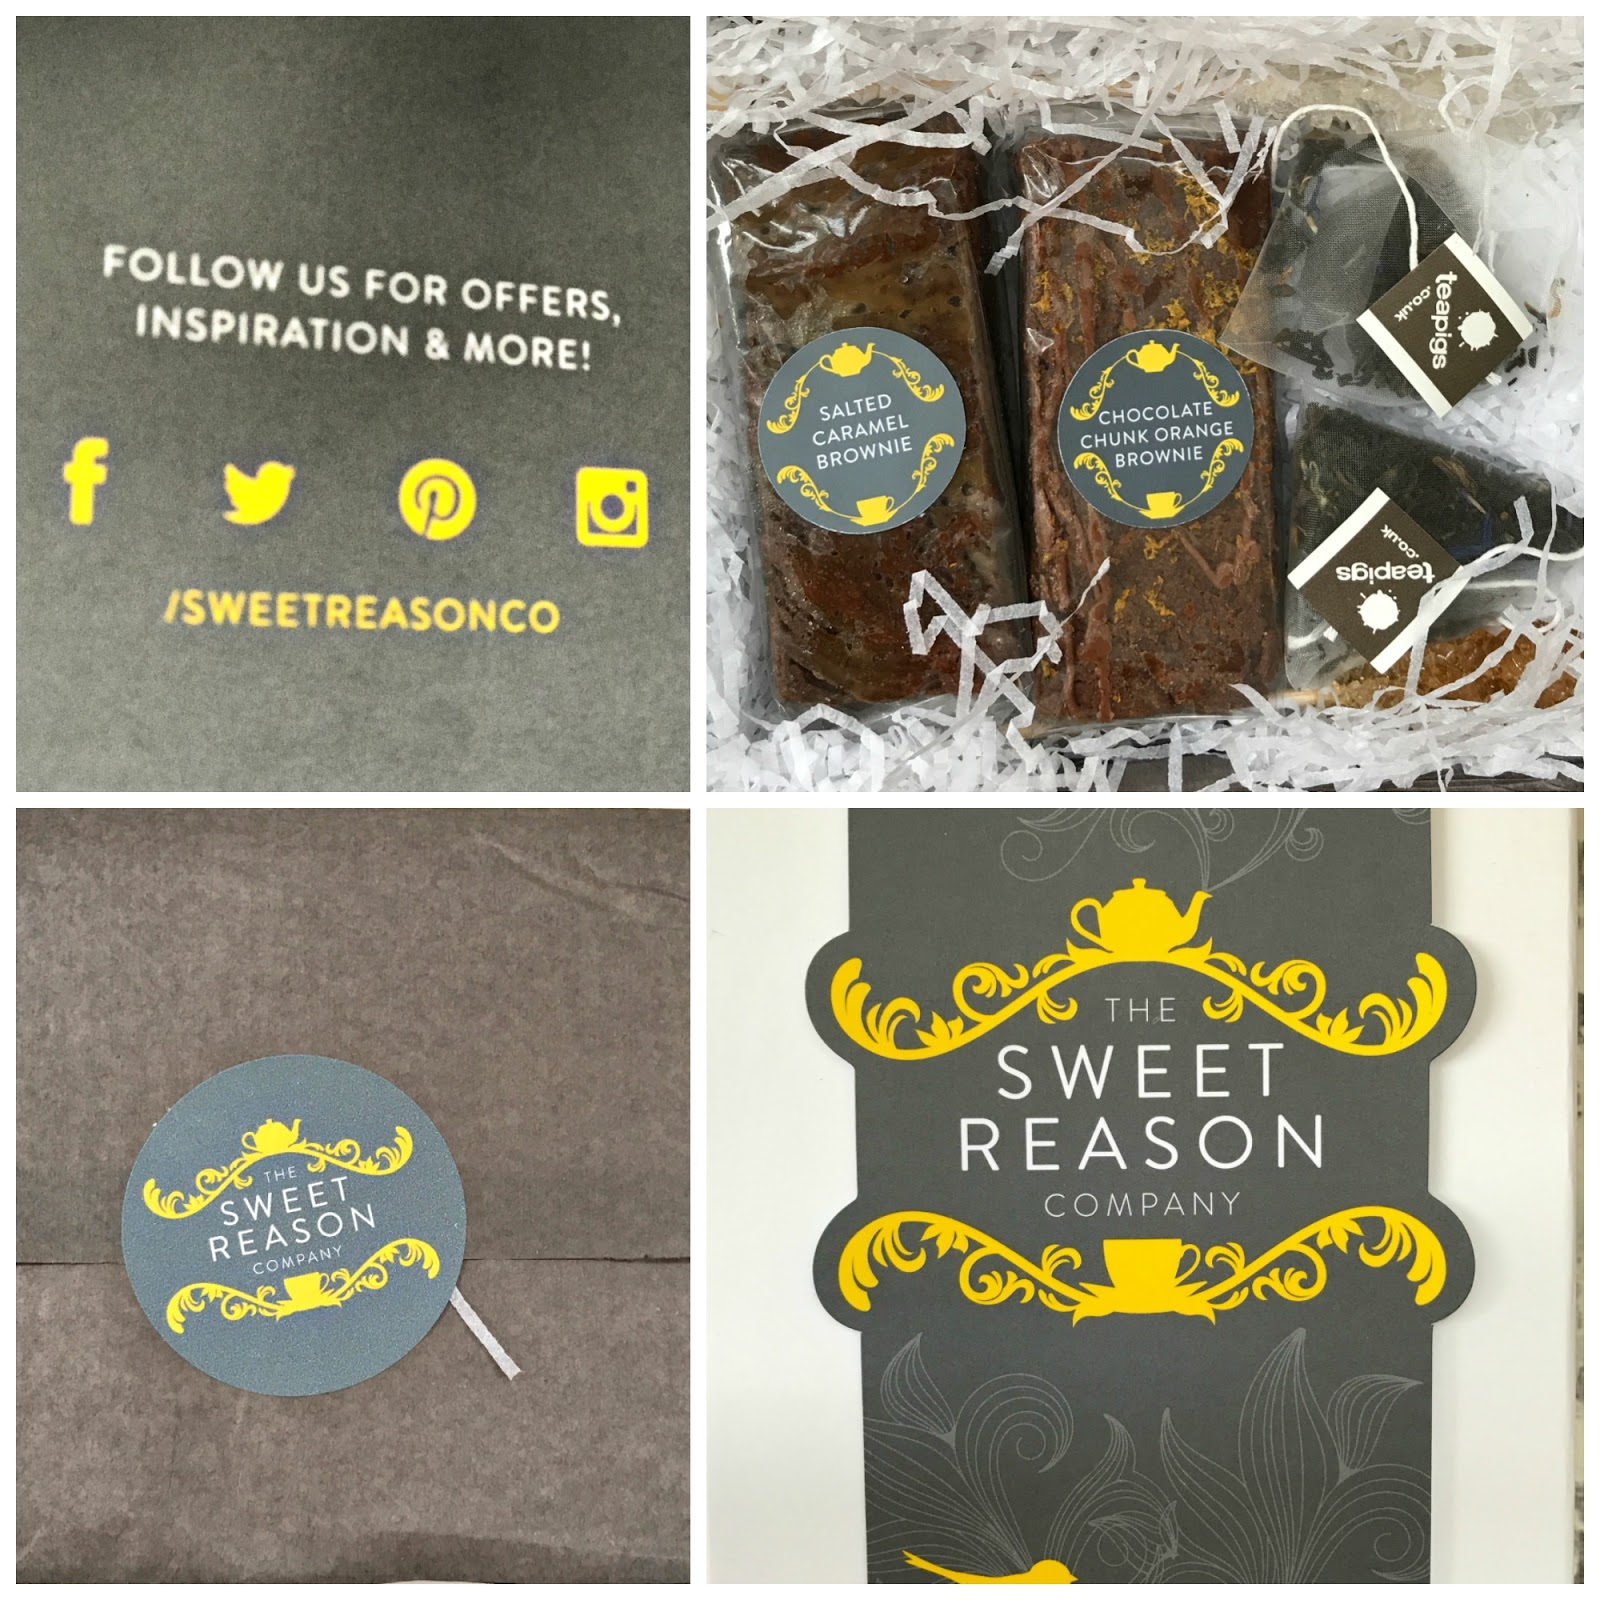 Win An Indulgent Box of Brownies From The Sweet Reason Company